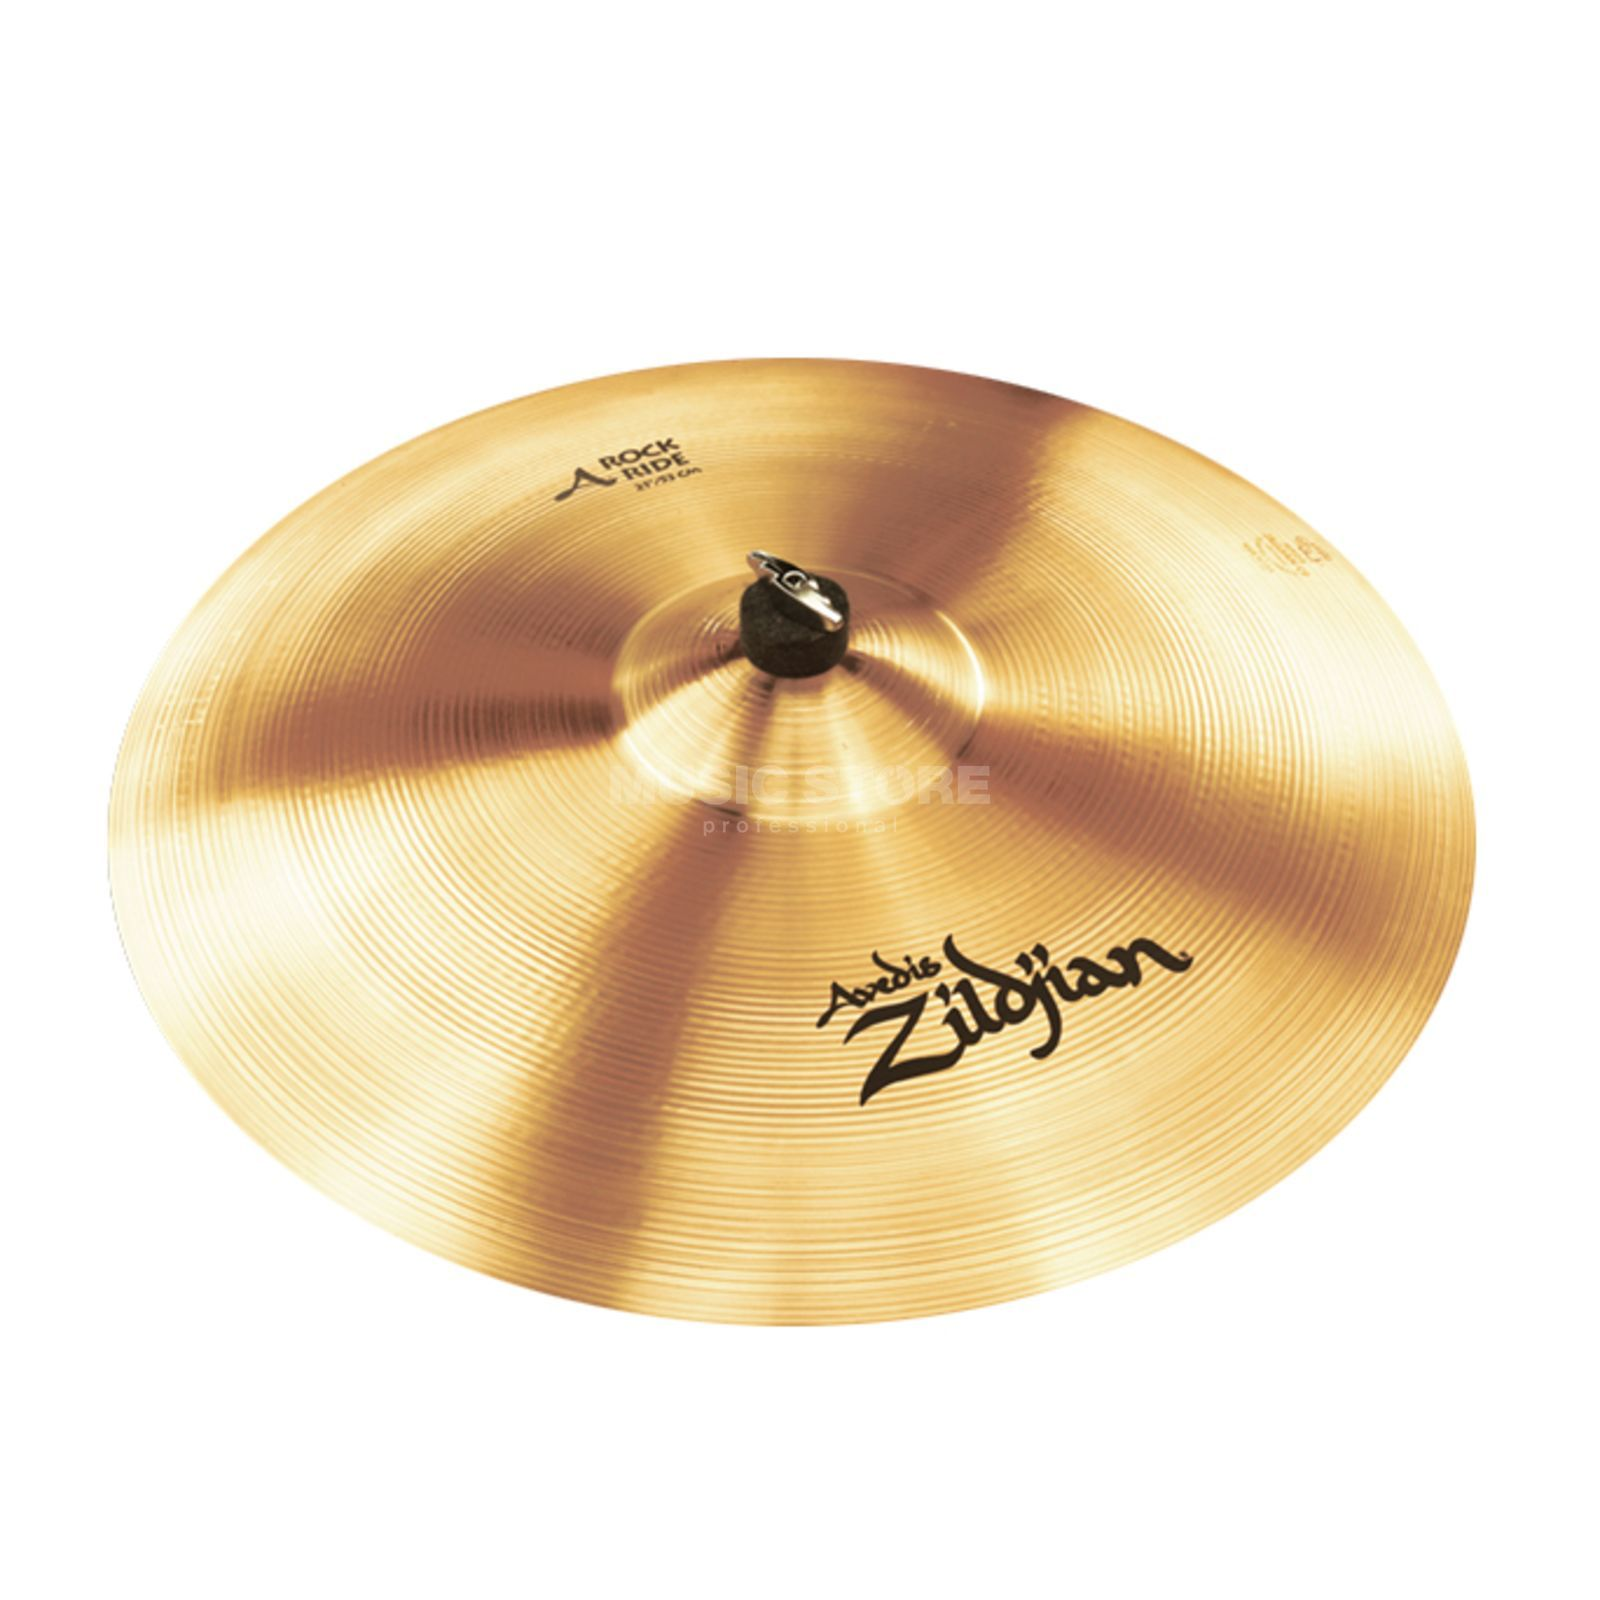 "Zildjian A' Zildjian Rock Ride 21"", Traditional Finish Image du produit"